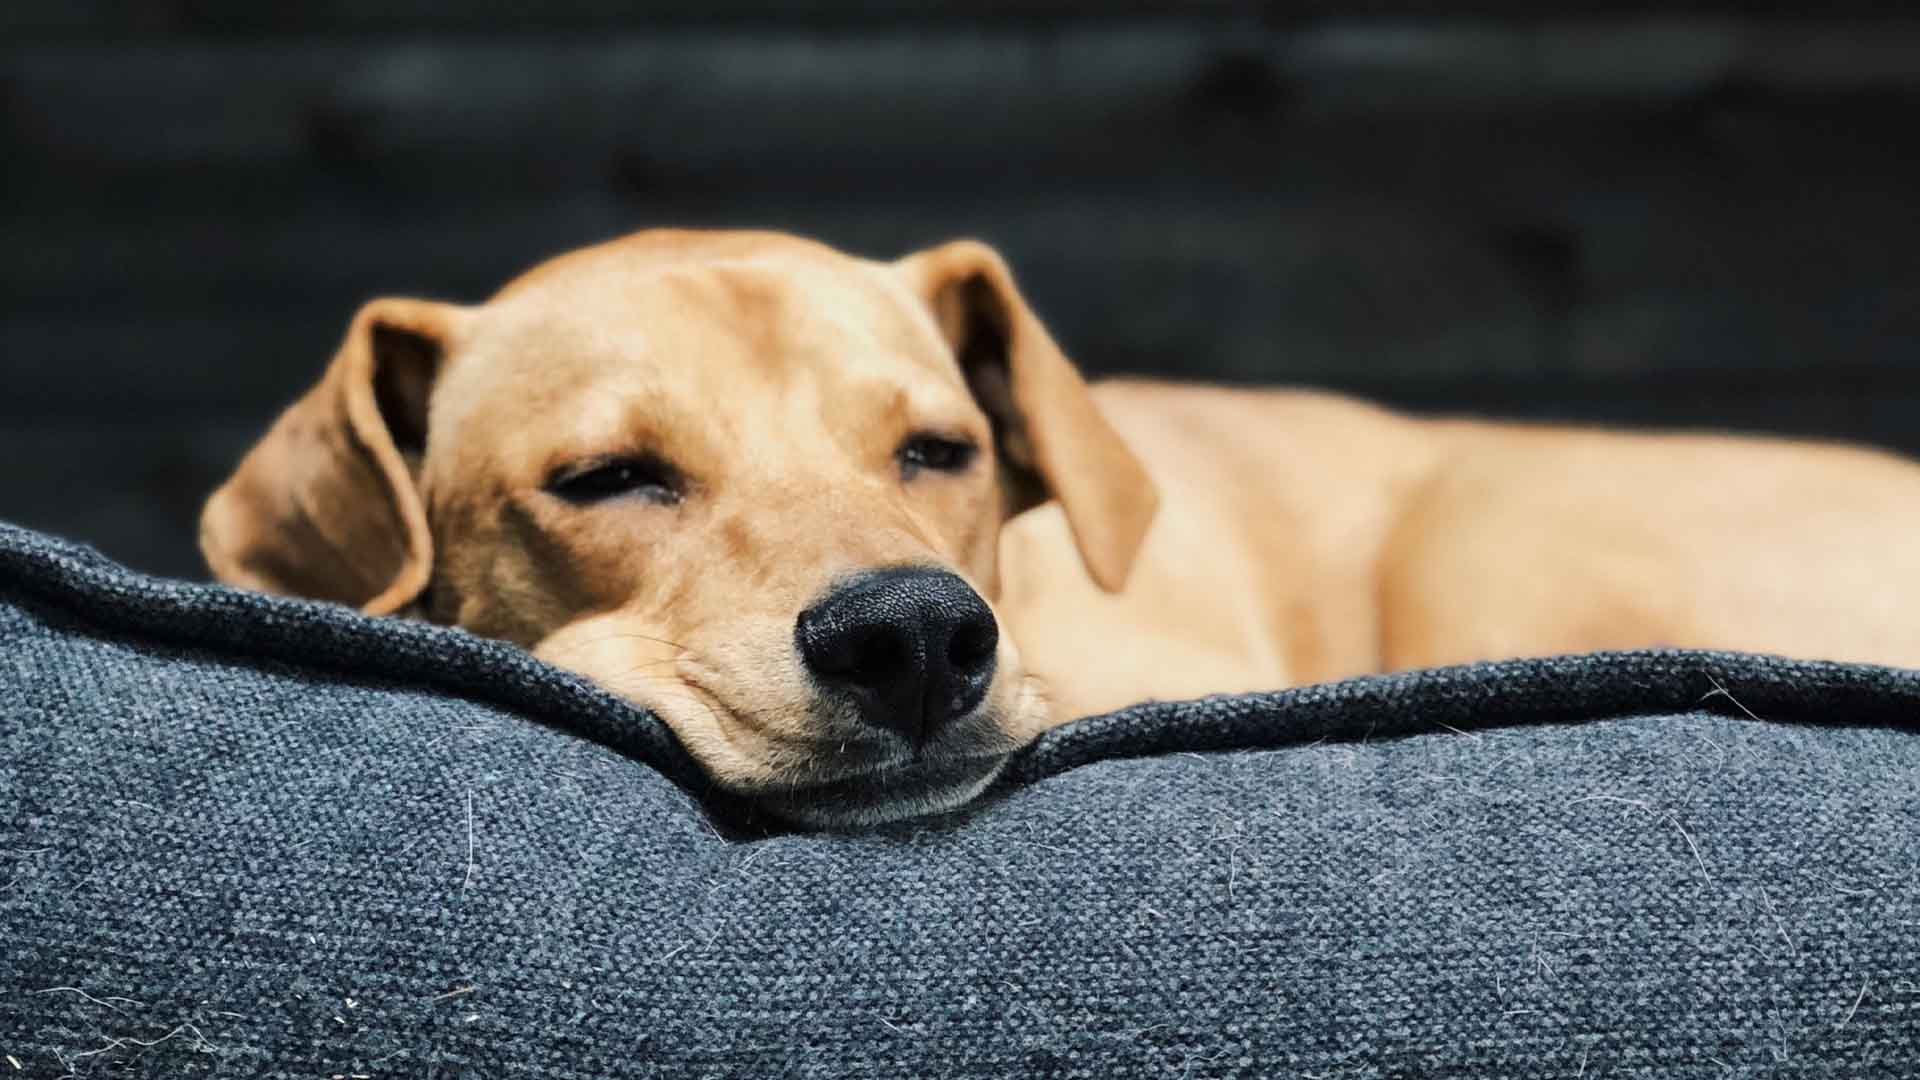 Best Dog Beds Of 2021: Reviews & Buying Guide